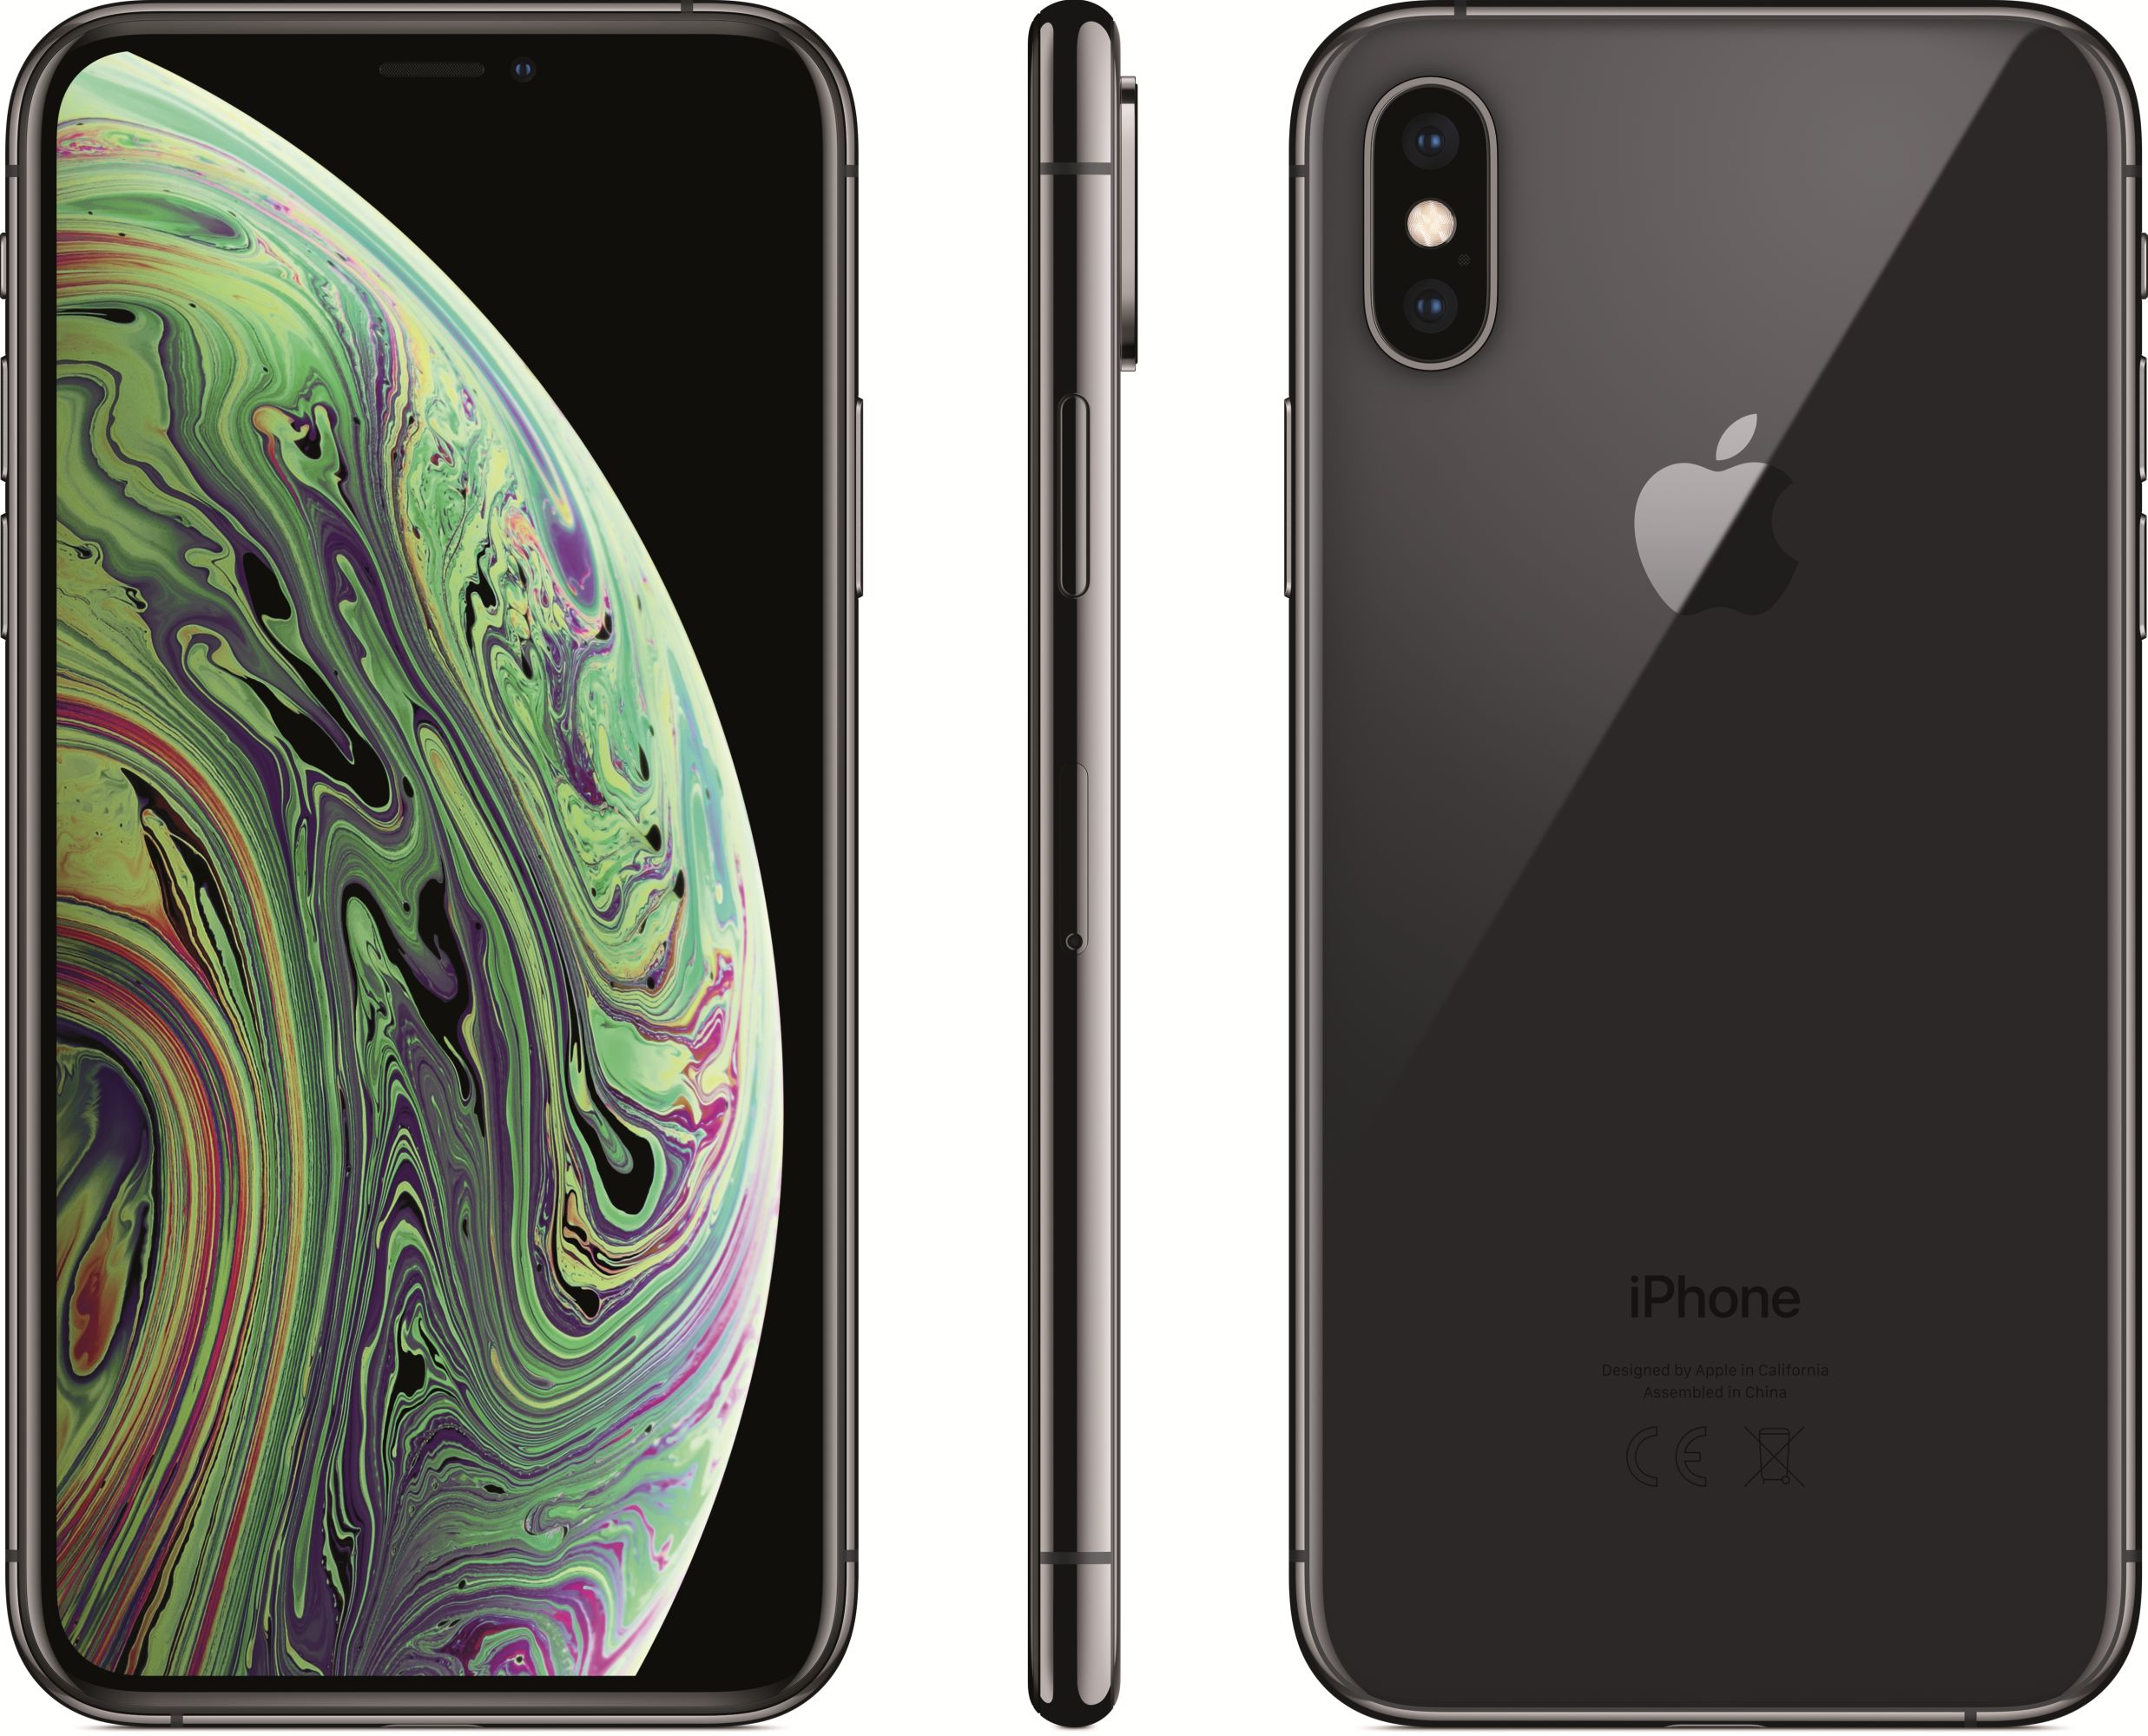 iPhone Xs (512GB, Space Gray)